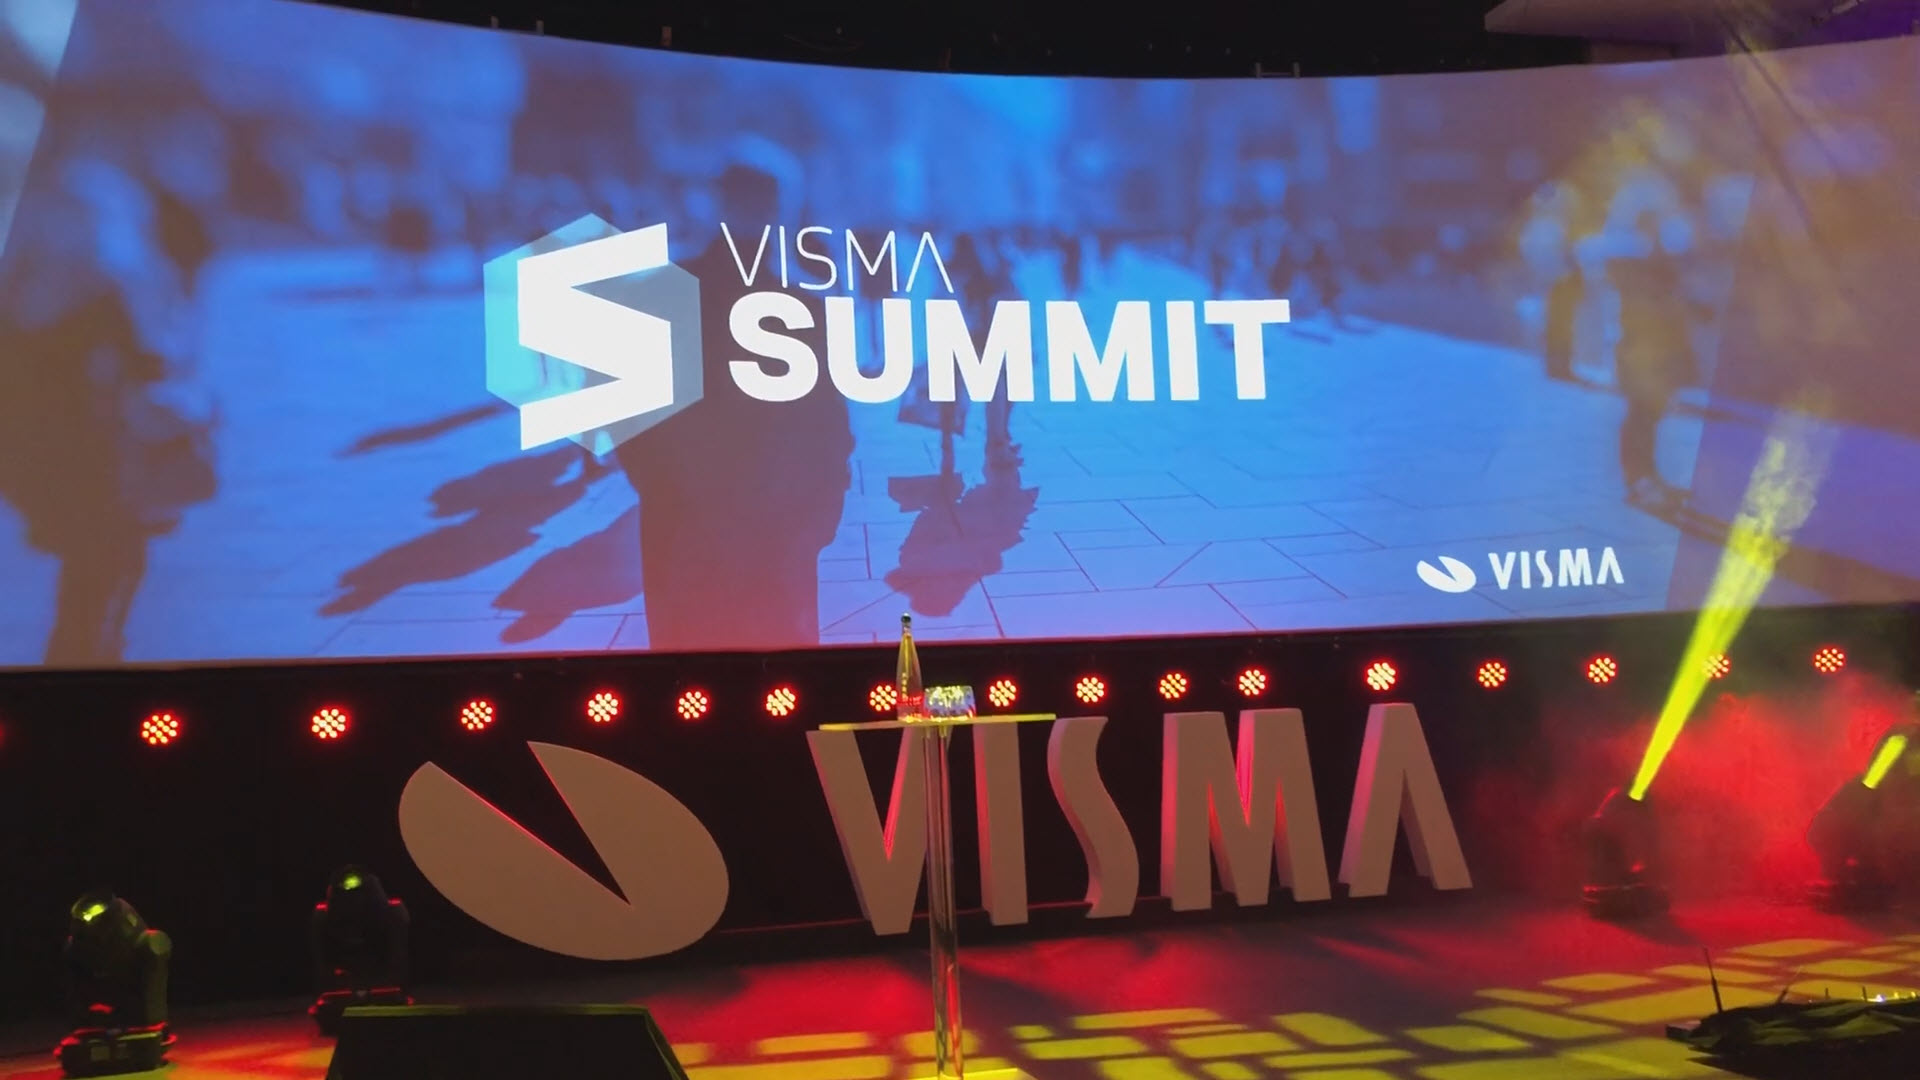 VISMA-SUMMIT-2018